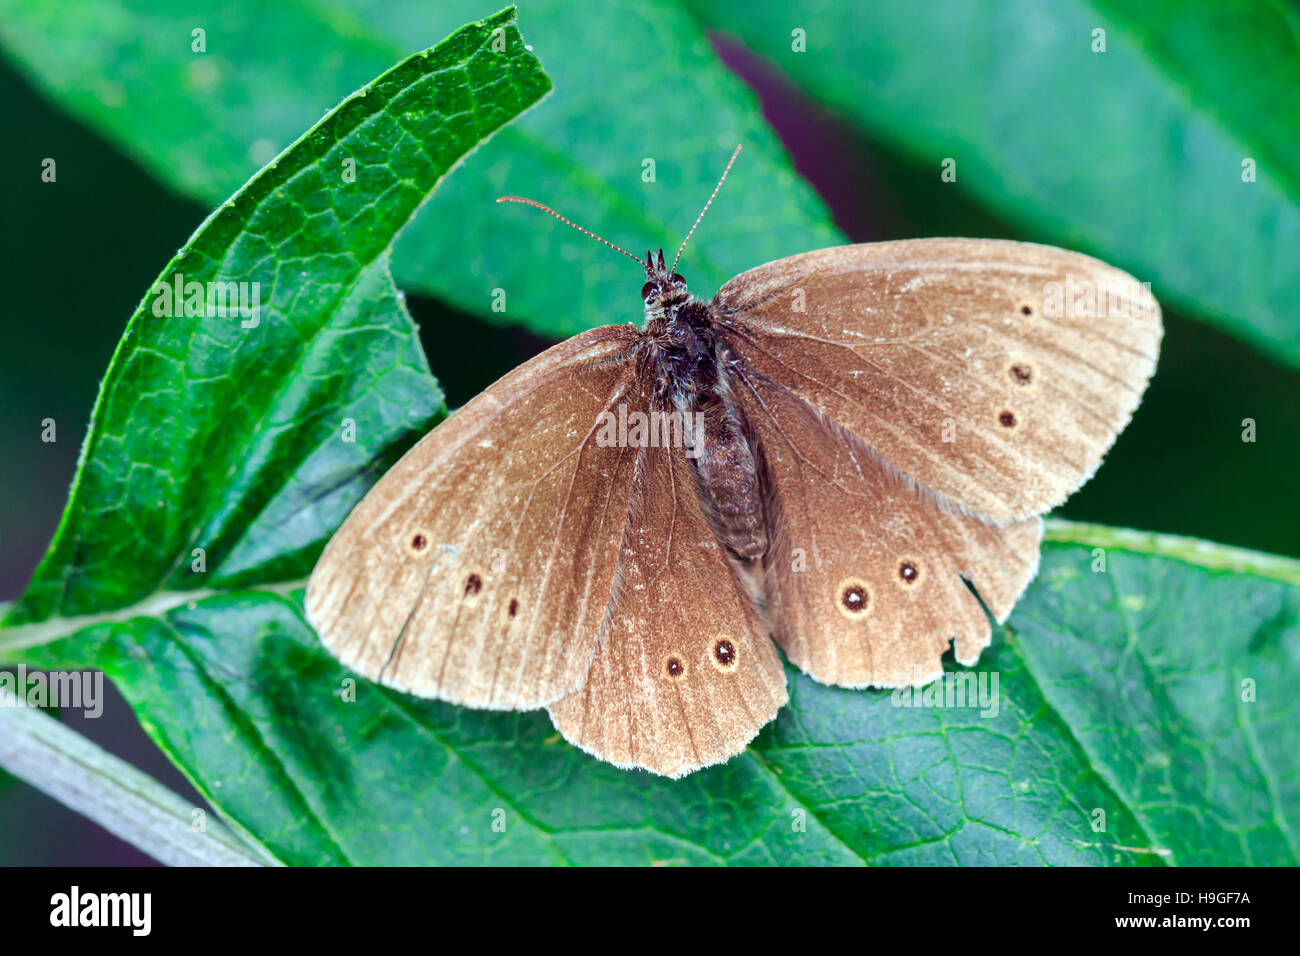 Ringlet Butterfly sat on a leaf in an English garden - Stock Image